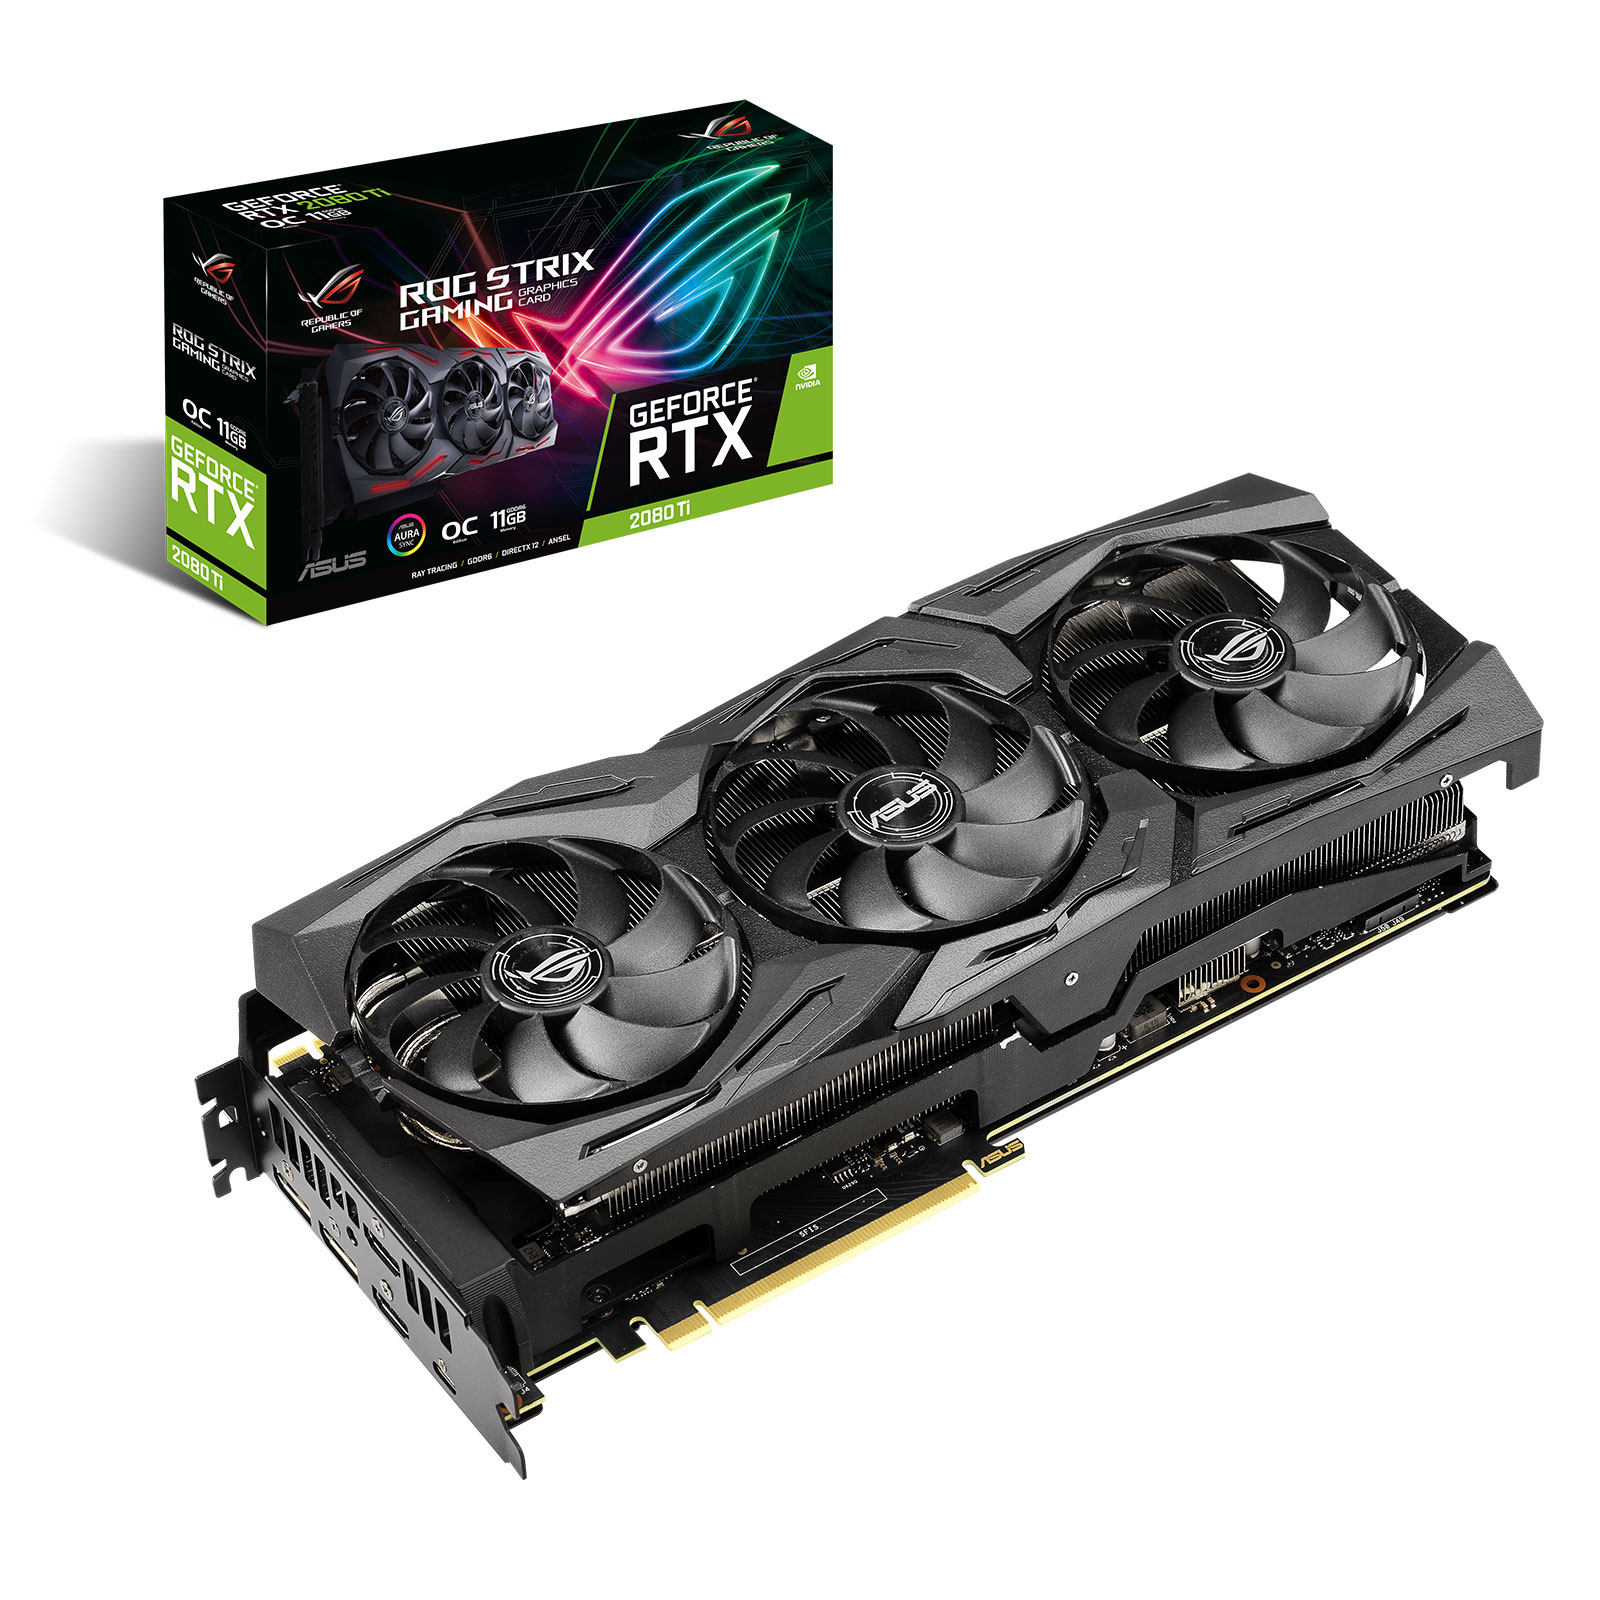 Carte graphique ASUS GeForce RTX 2080 Ti ROG-STRIX-RTX2080TI-O11G-GAMING 11 Go GDDR6 - HDMI/DisplayPort/USB Type-C - PCI Express (NVIDIA GeForce RTX 2080 Ti)